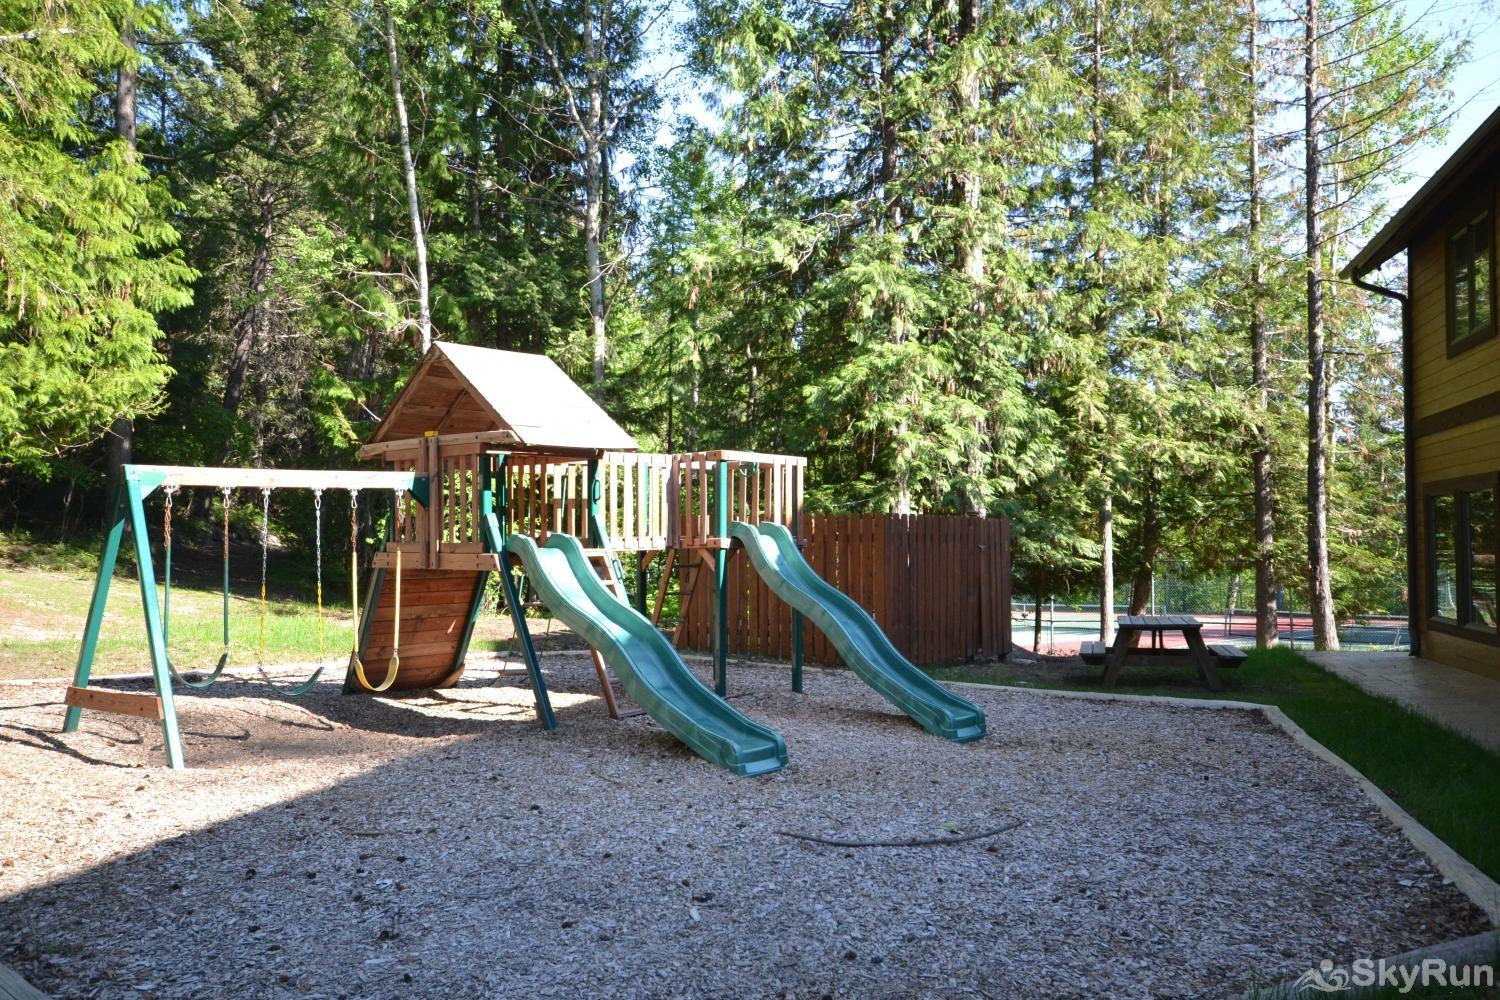 Ptarmigan Village 86 Playground next to tennis courts and indoor pool